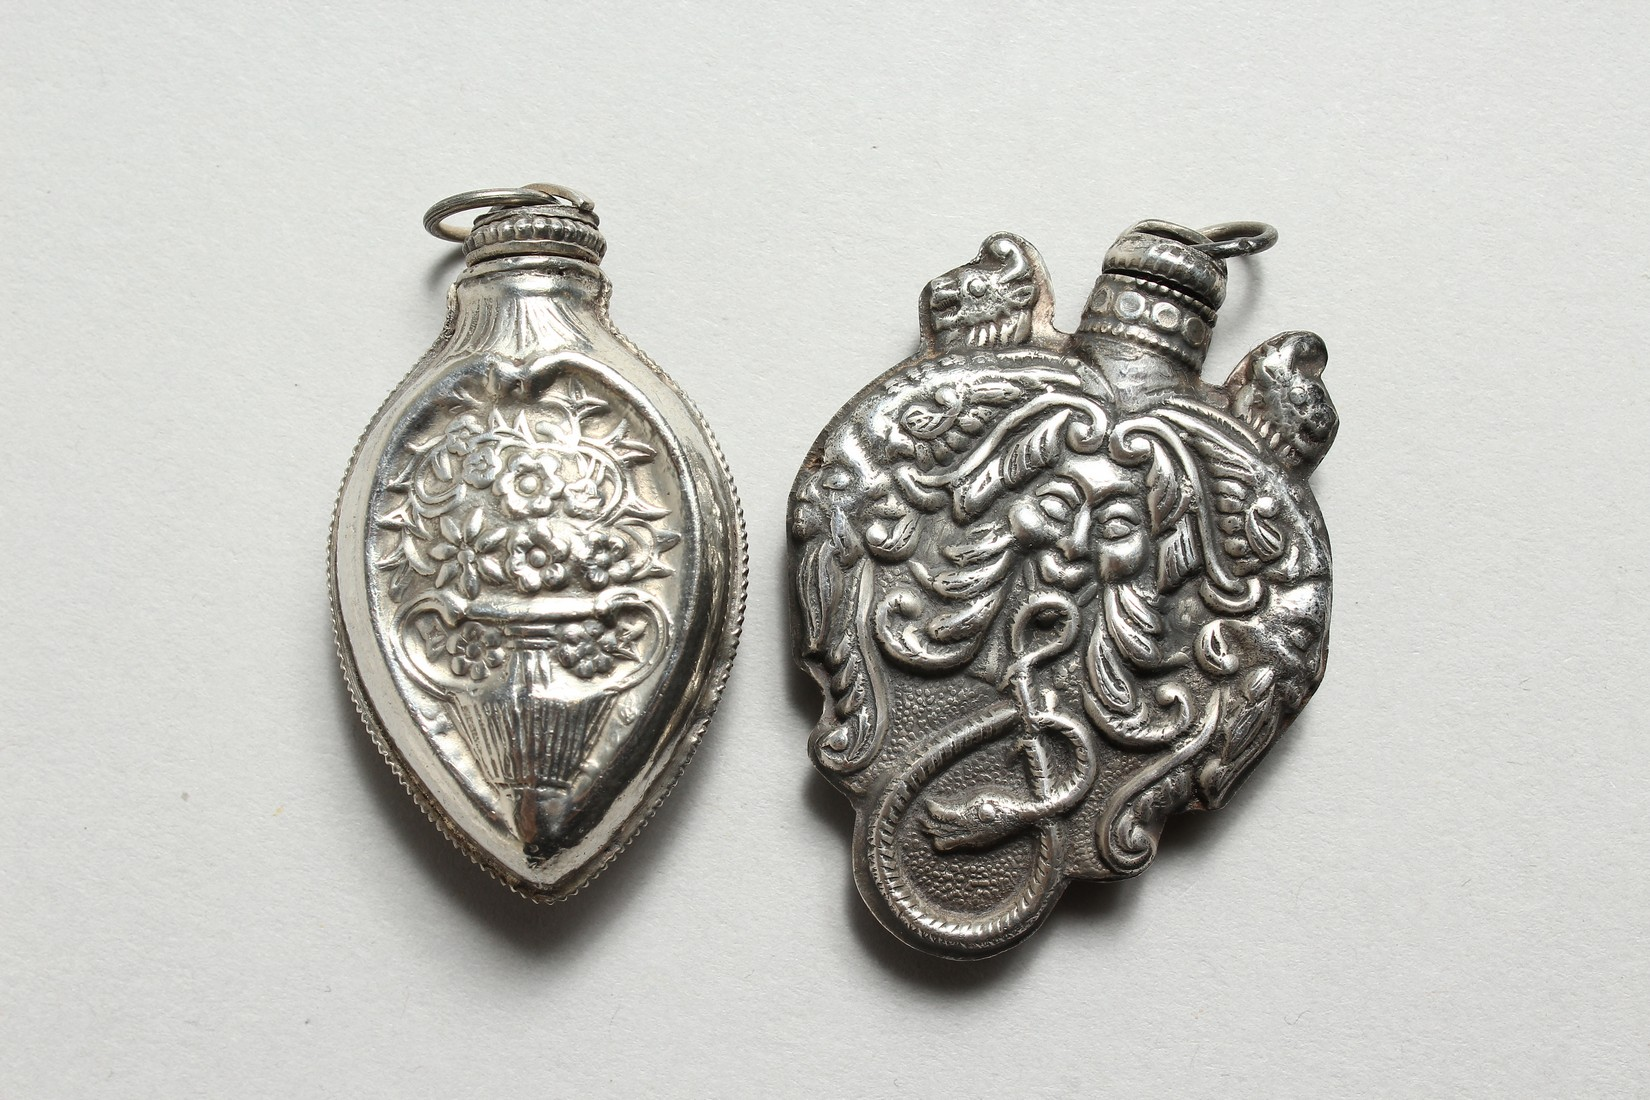 A NOVELTY SILVER PERFUME BOTTLE. - Image 2 of 2